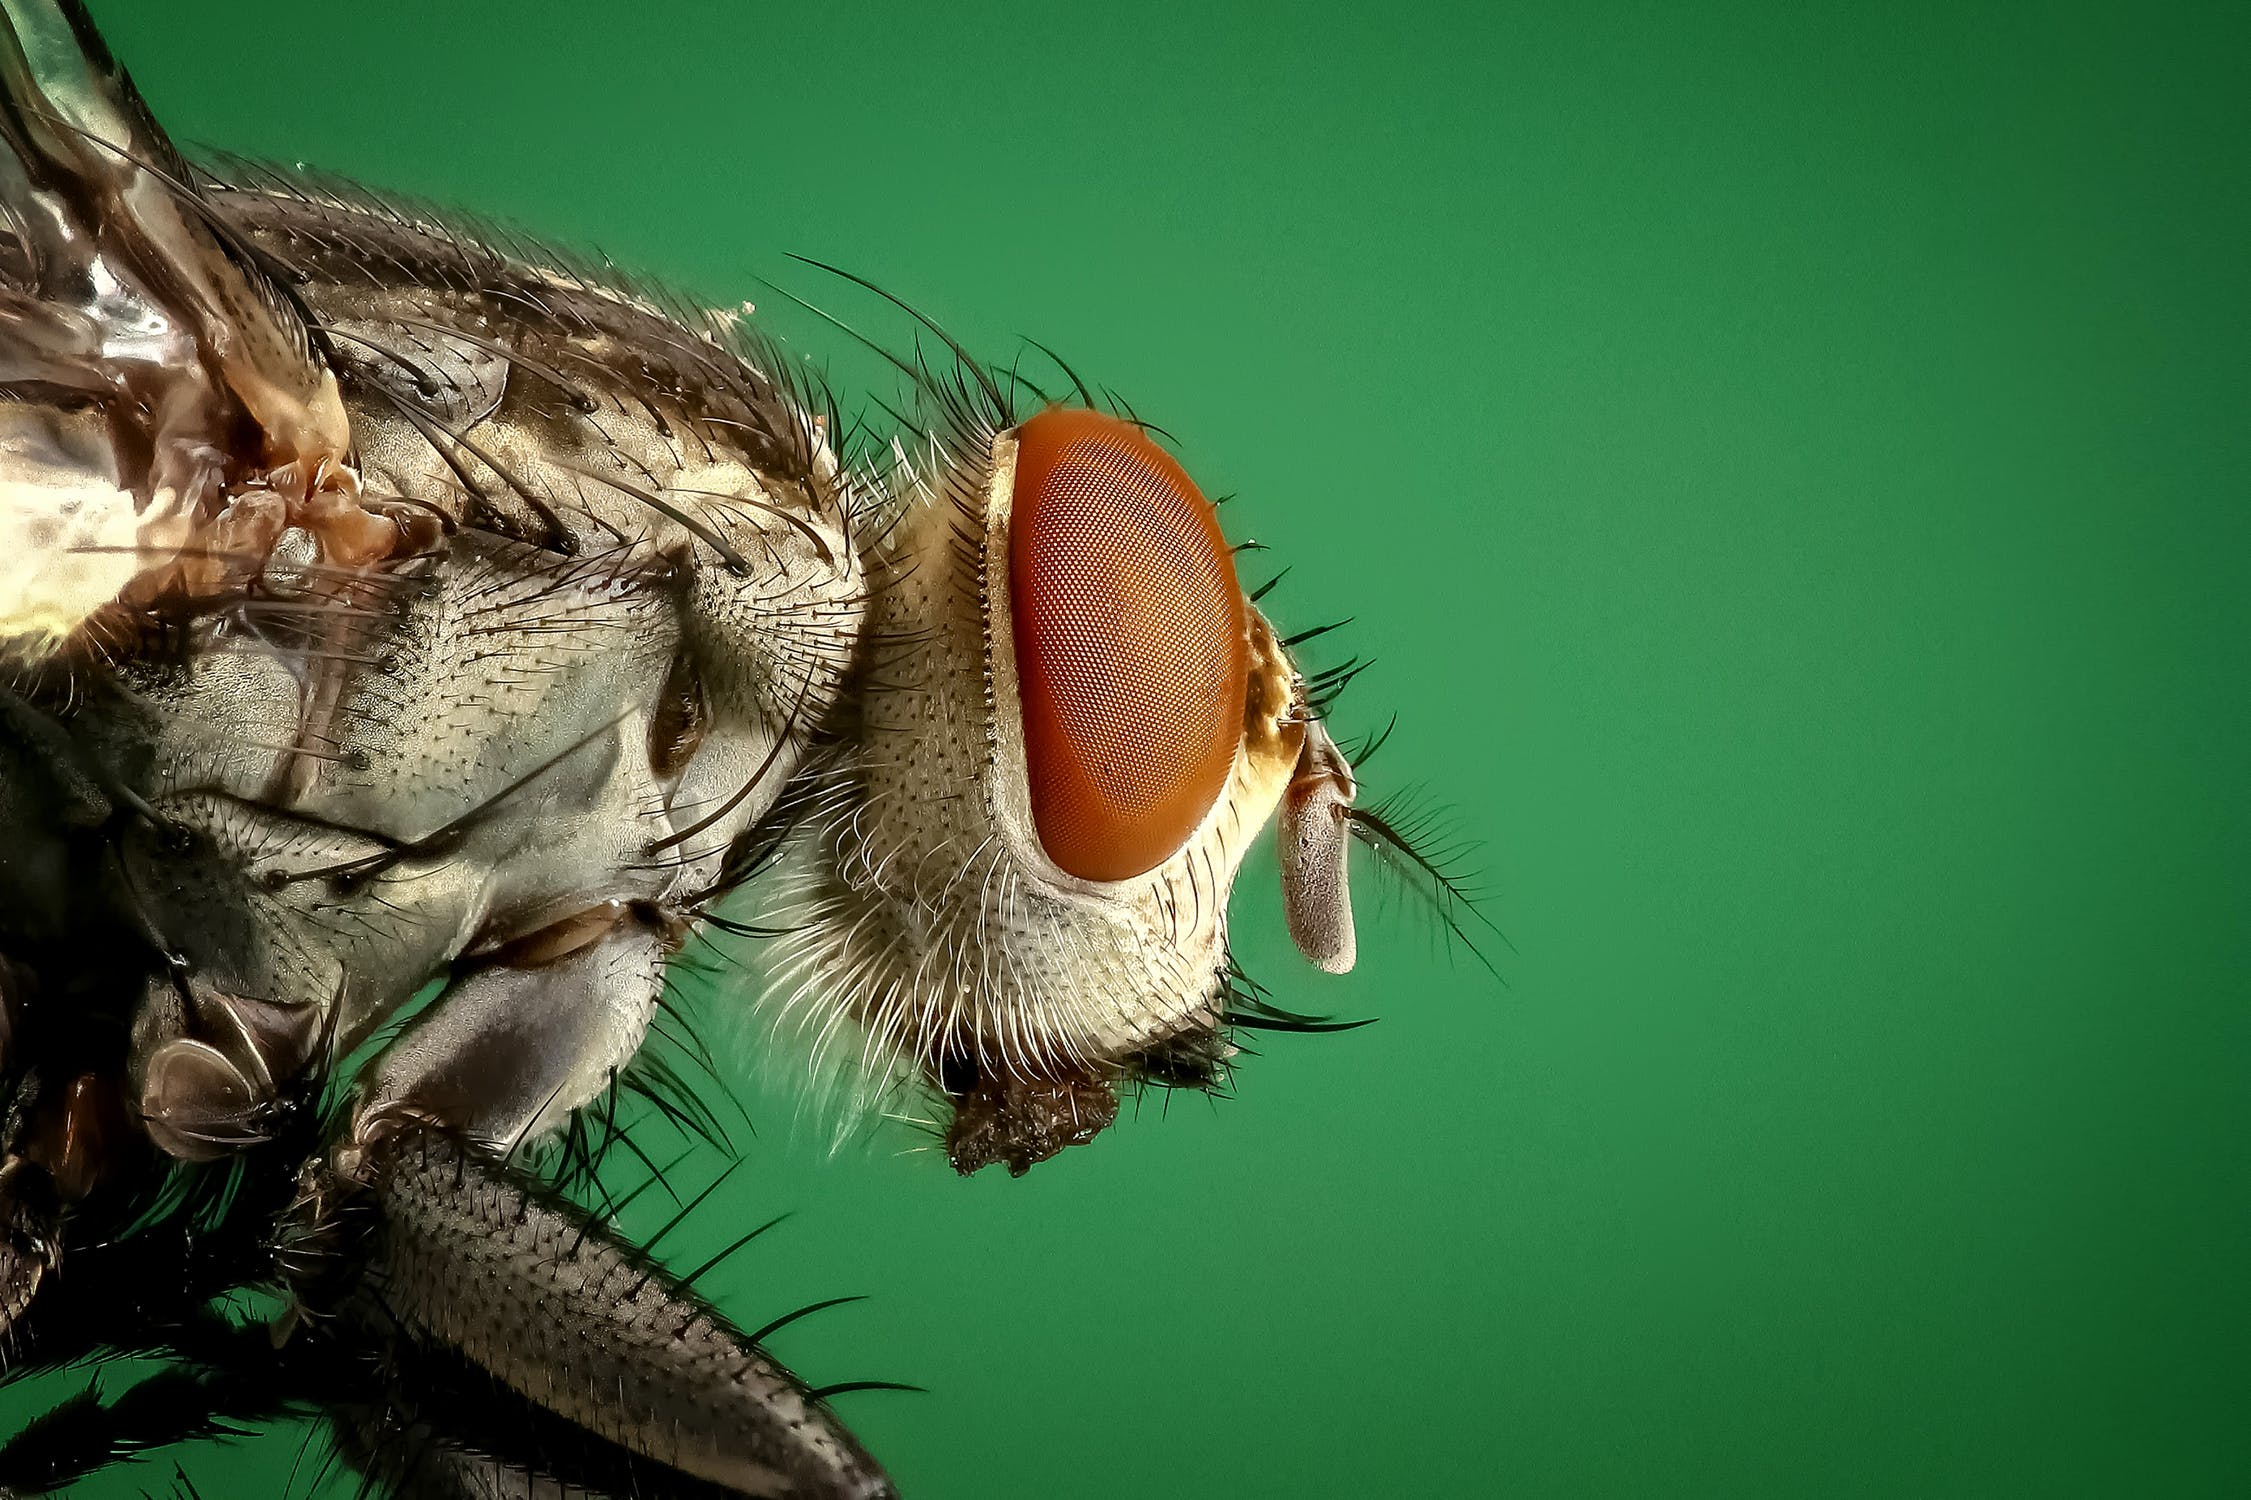 housefly-fly-insect-macro.jpg?auto=compr